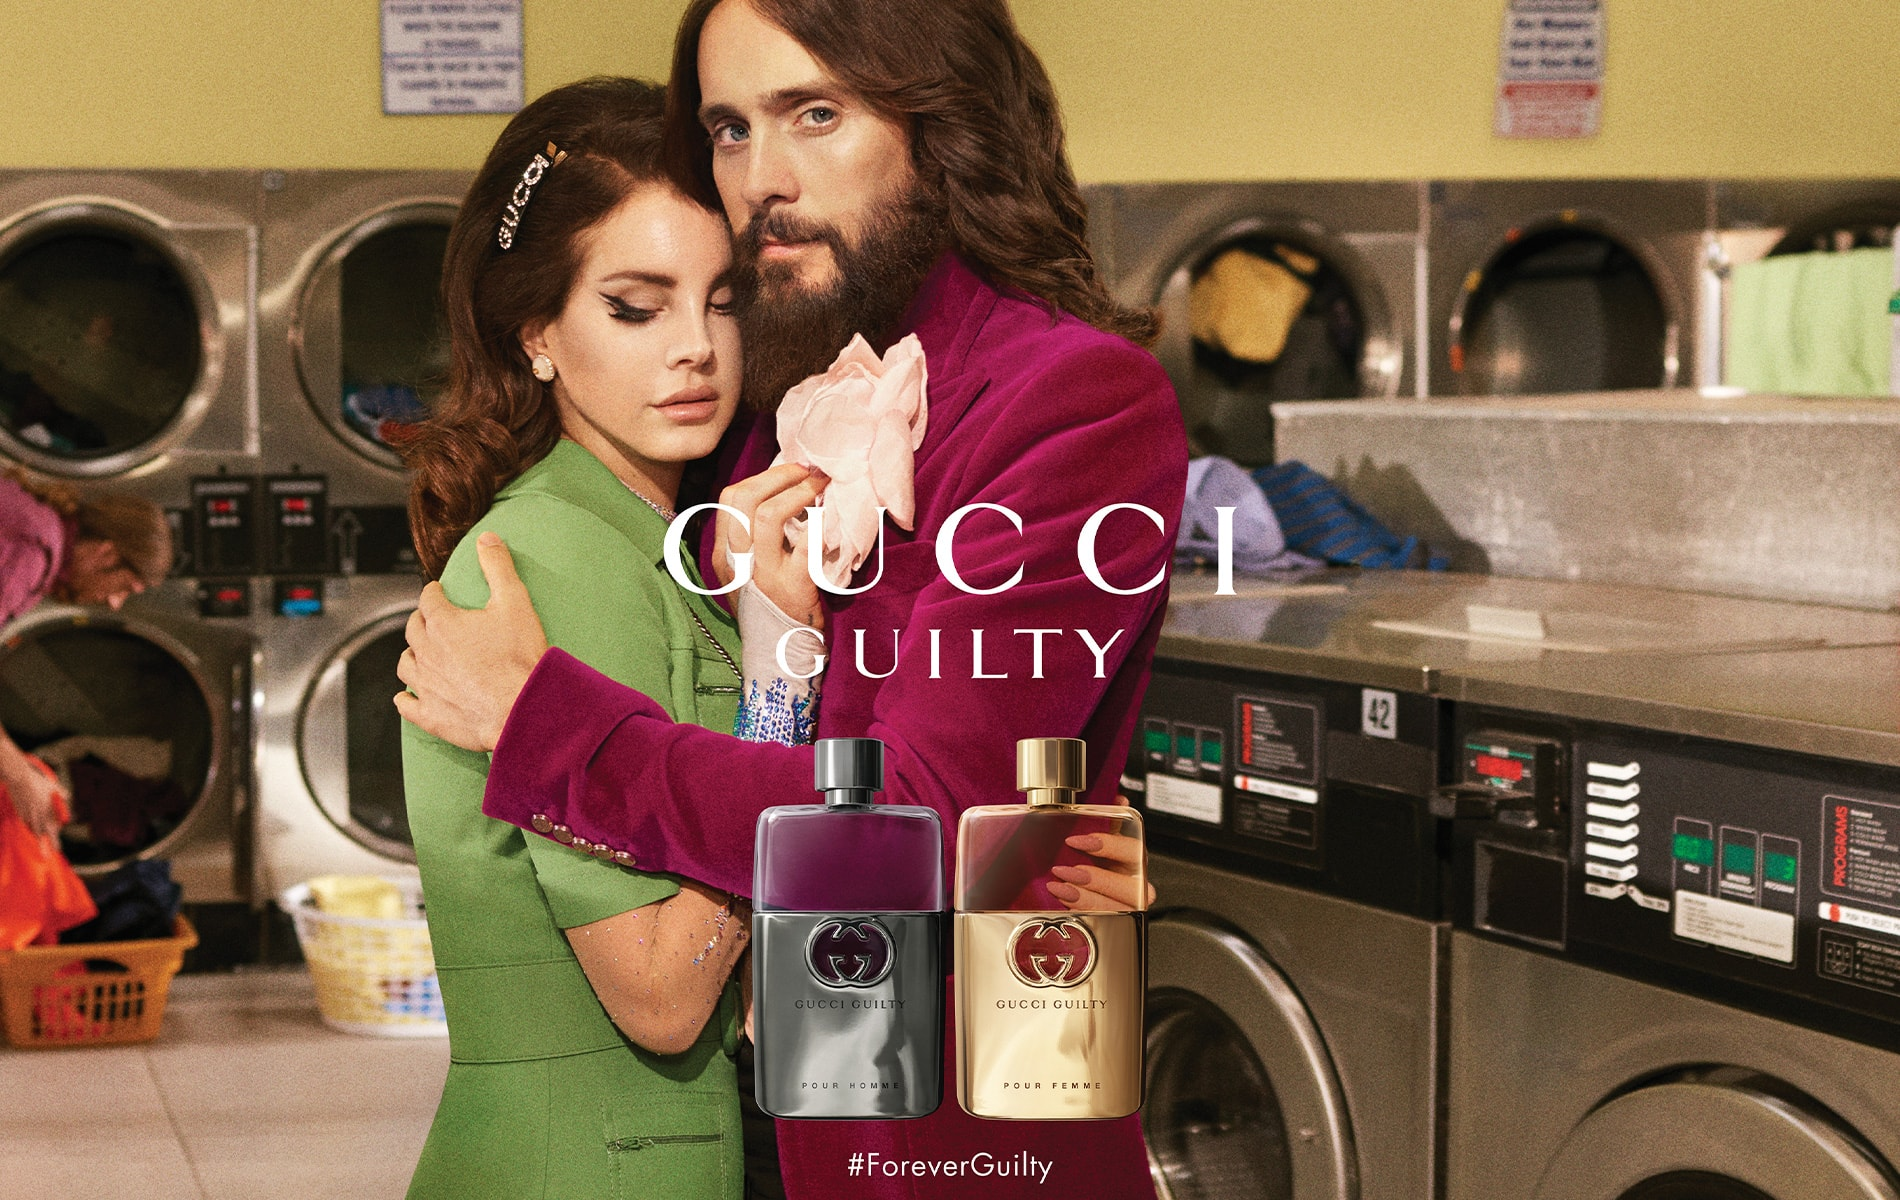 Gucci, Gucci Guilty, Forever Guilty, Lana Del Ray, Jared Leto